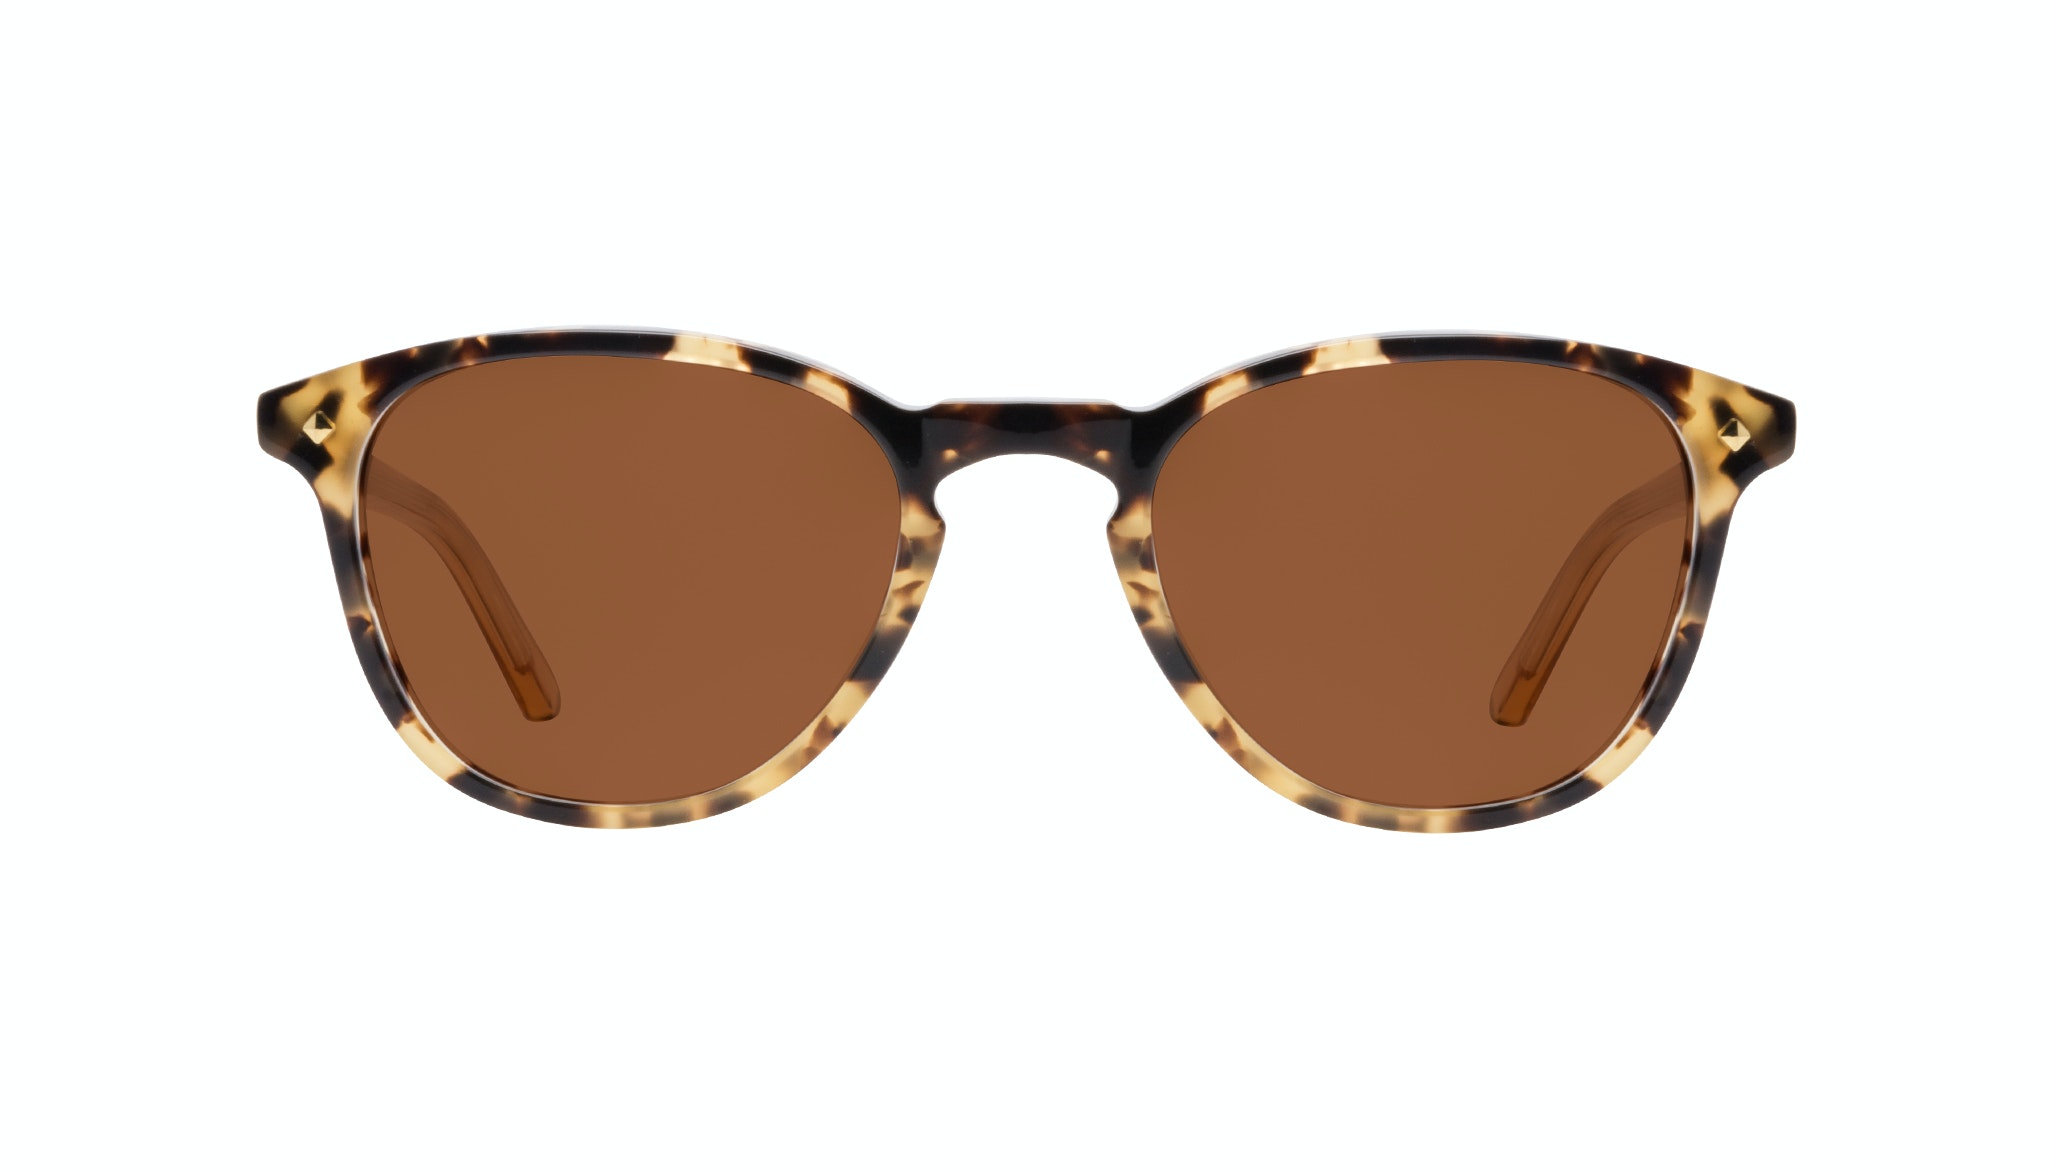 Affordable Fashion Glasses Round Sunglasses Women Crush Bingal Front